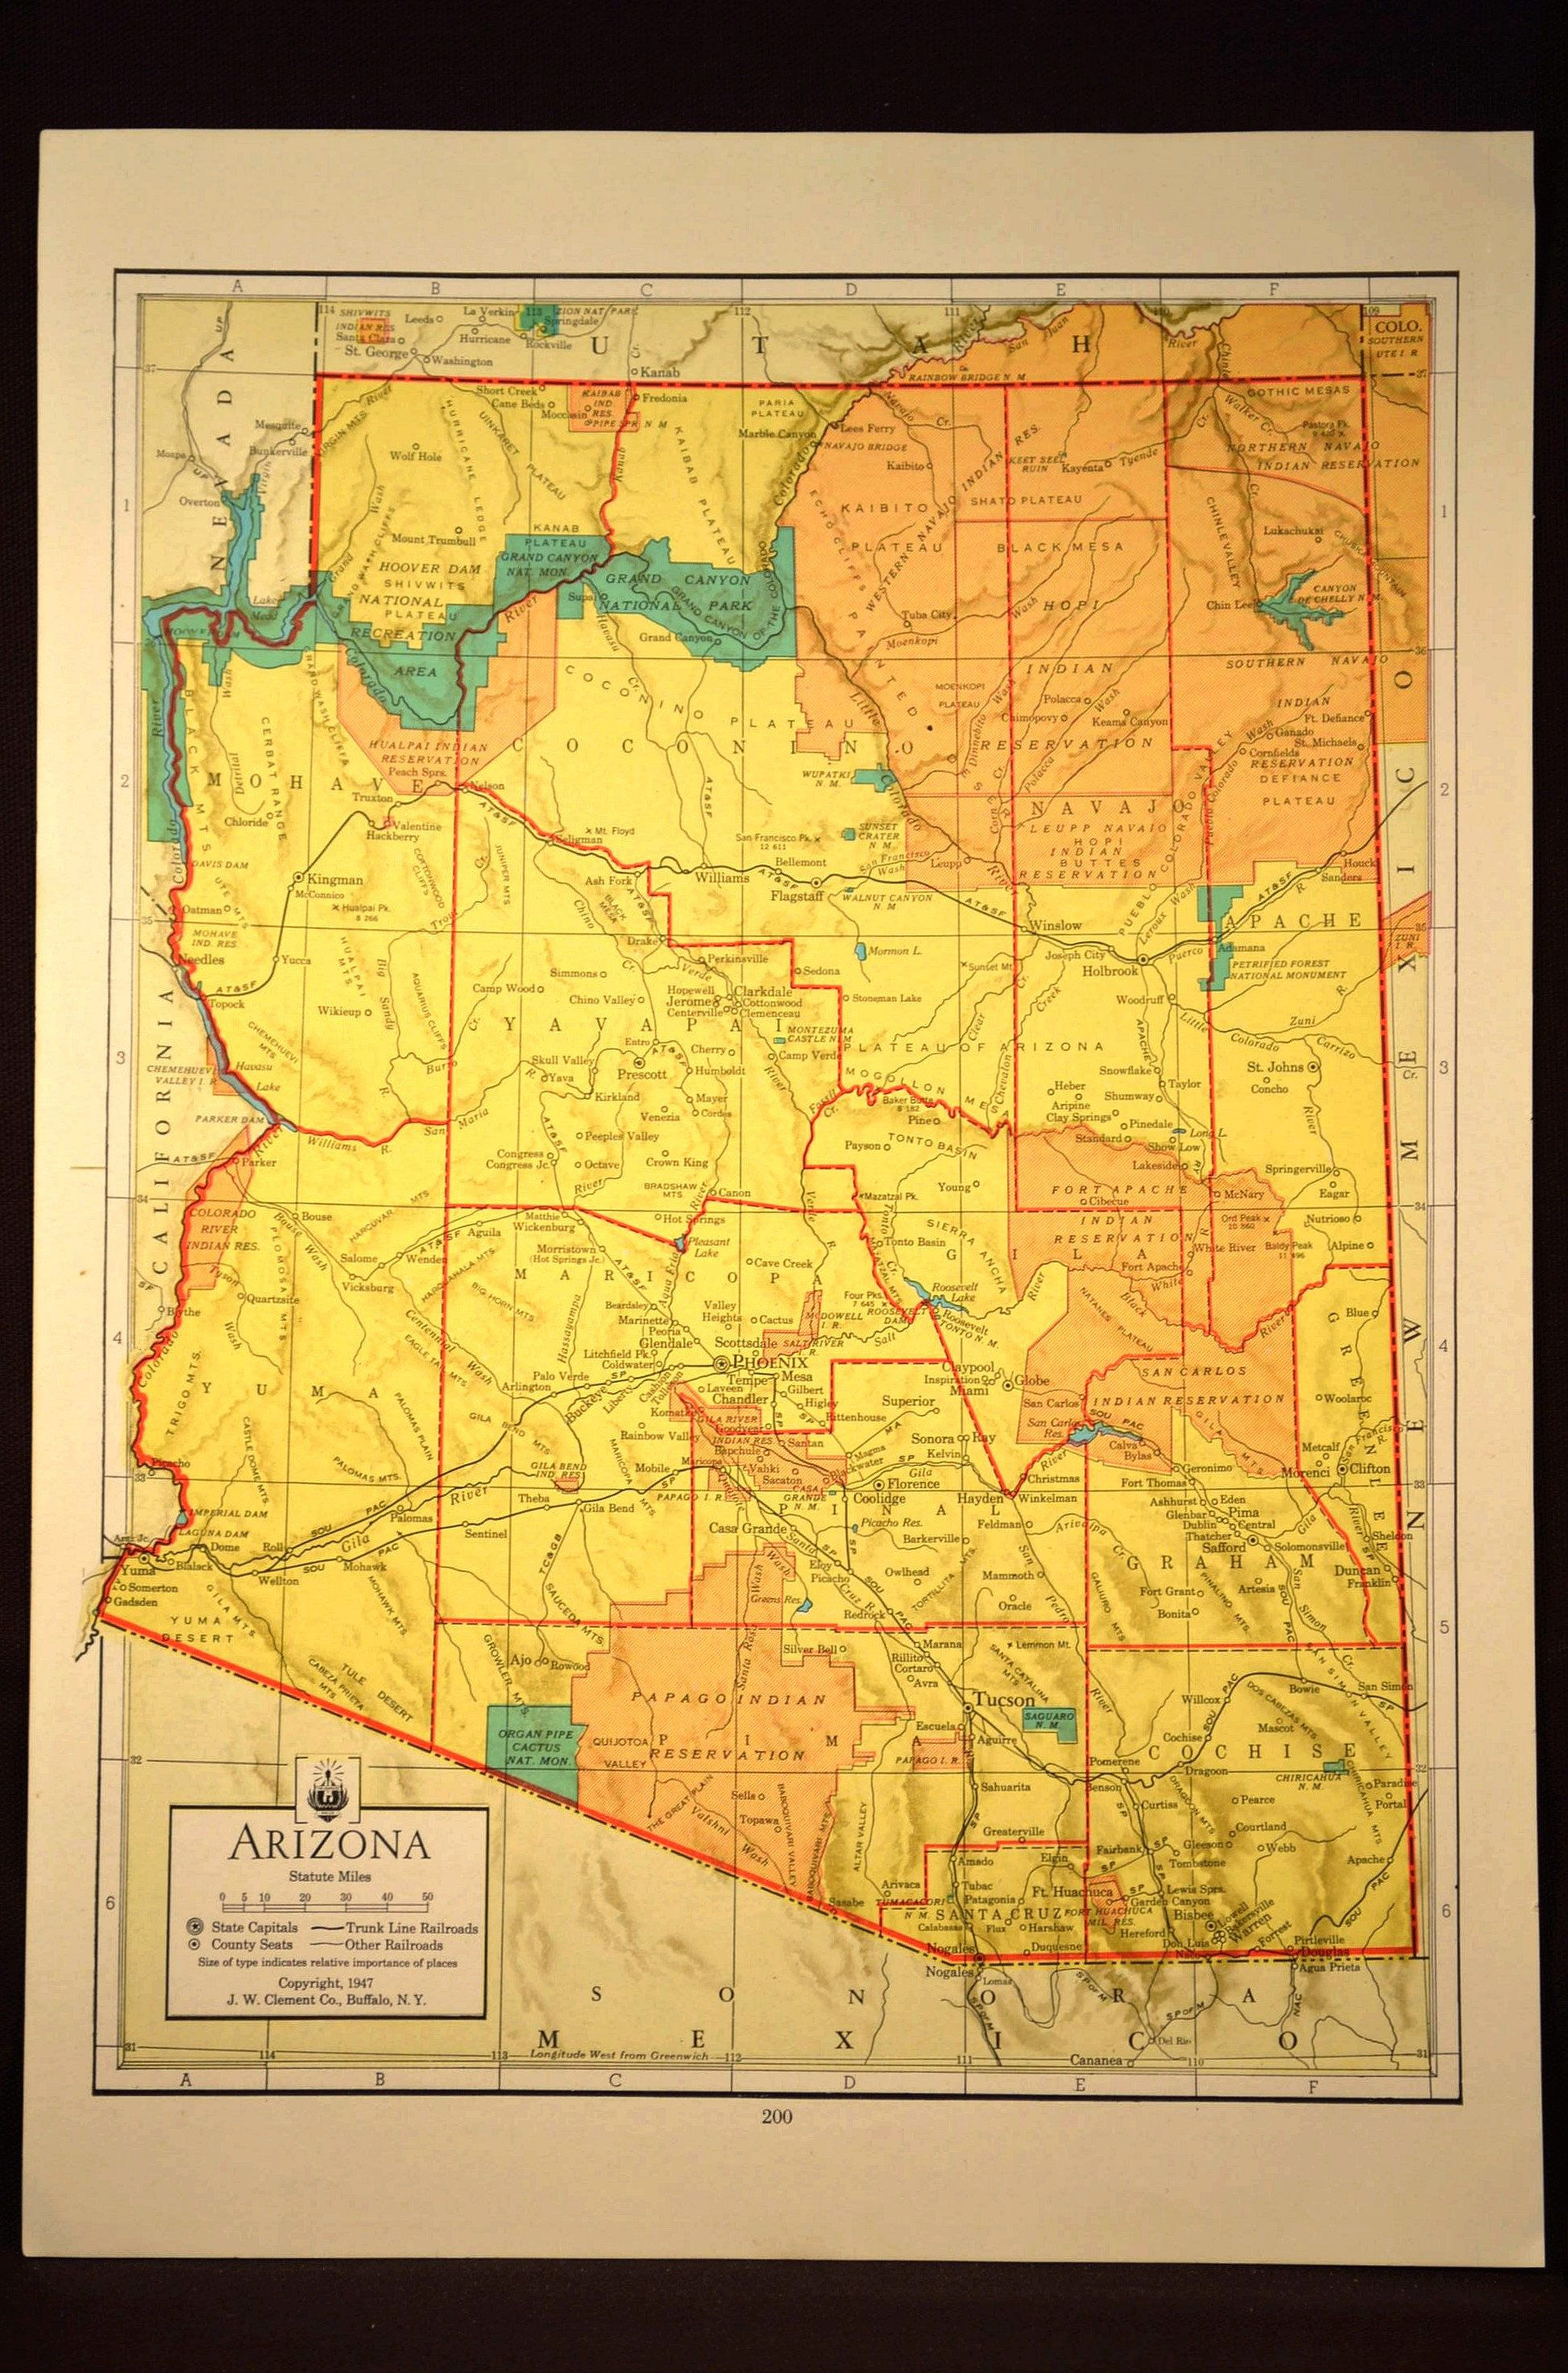 Colorful Yellow Vintage Arizona Map Arizona Original 1940s | Map ...